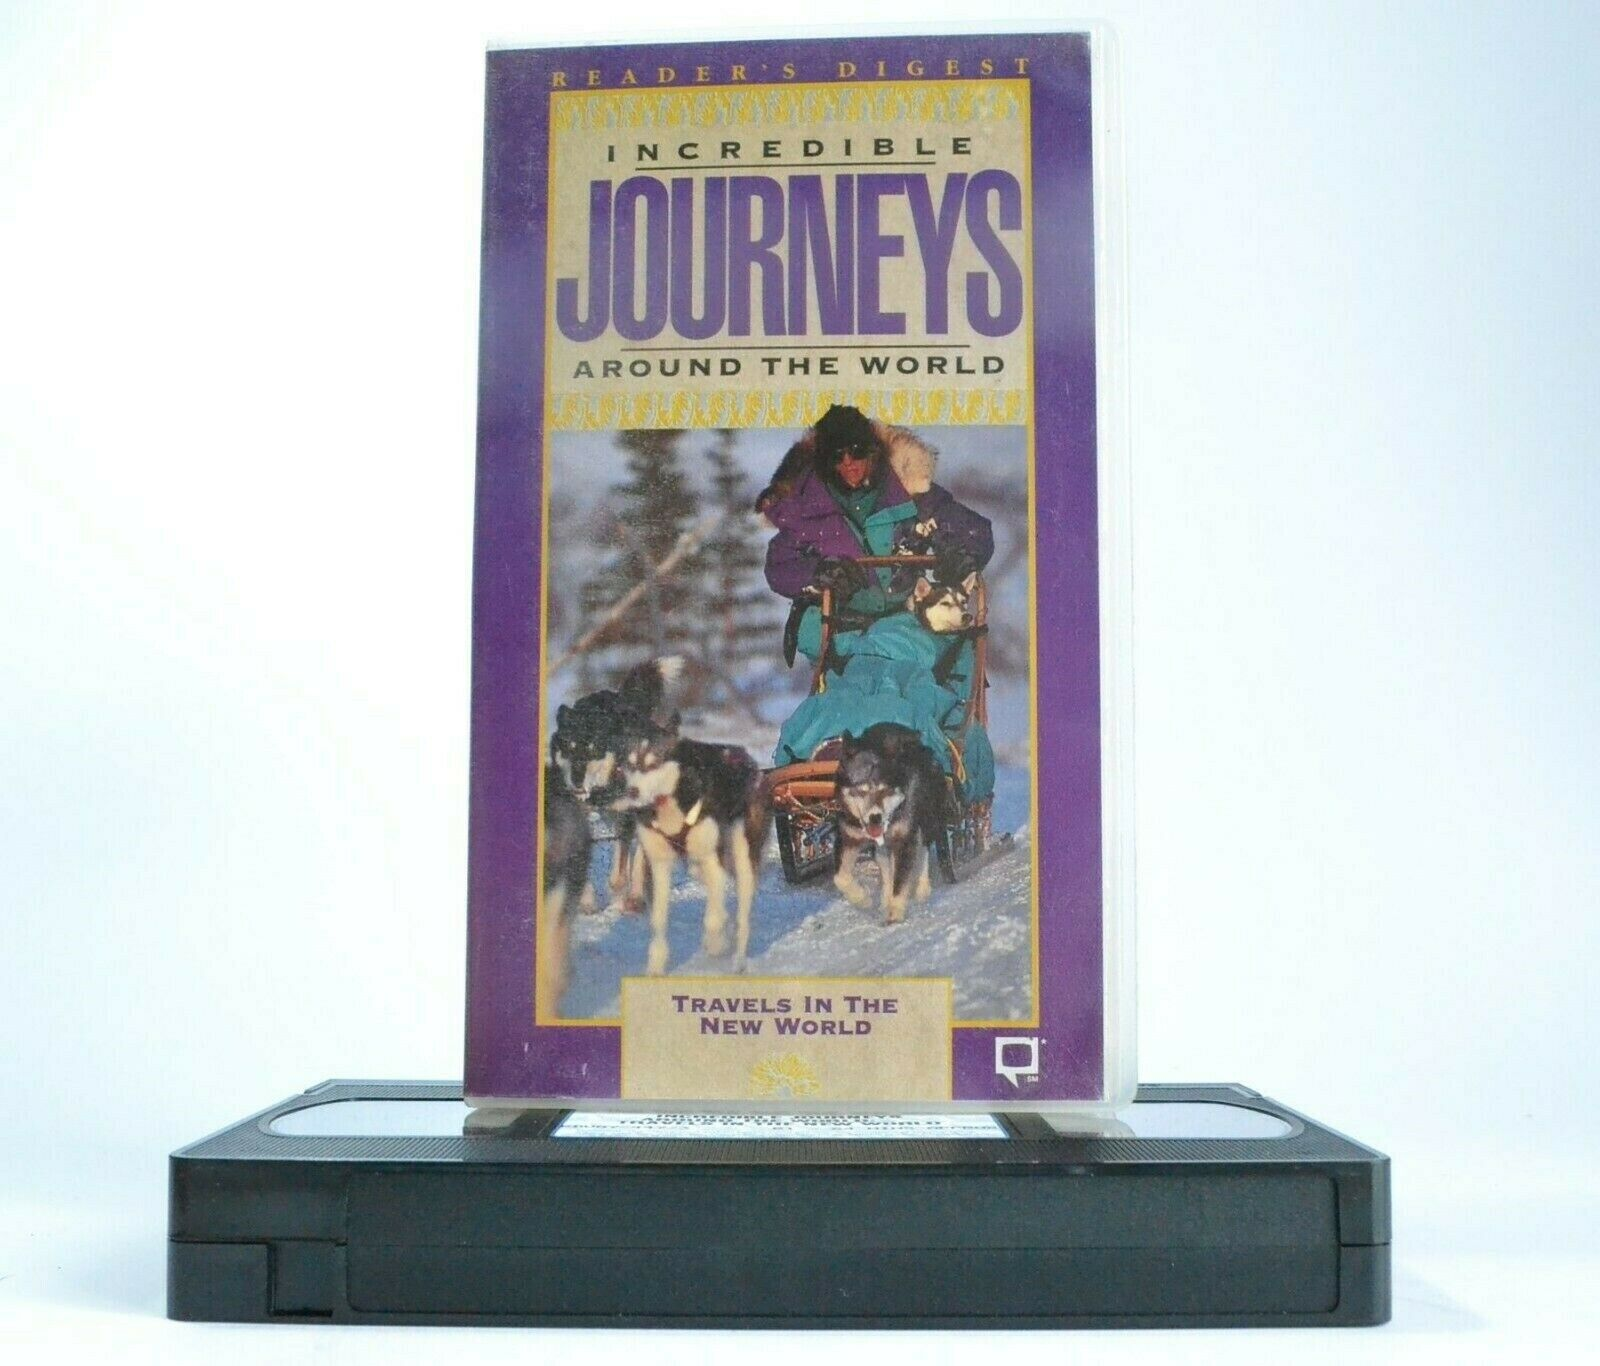 Incredible Journeys: Travels In The New World - Reader's Digest - Alaska - VHS